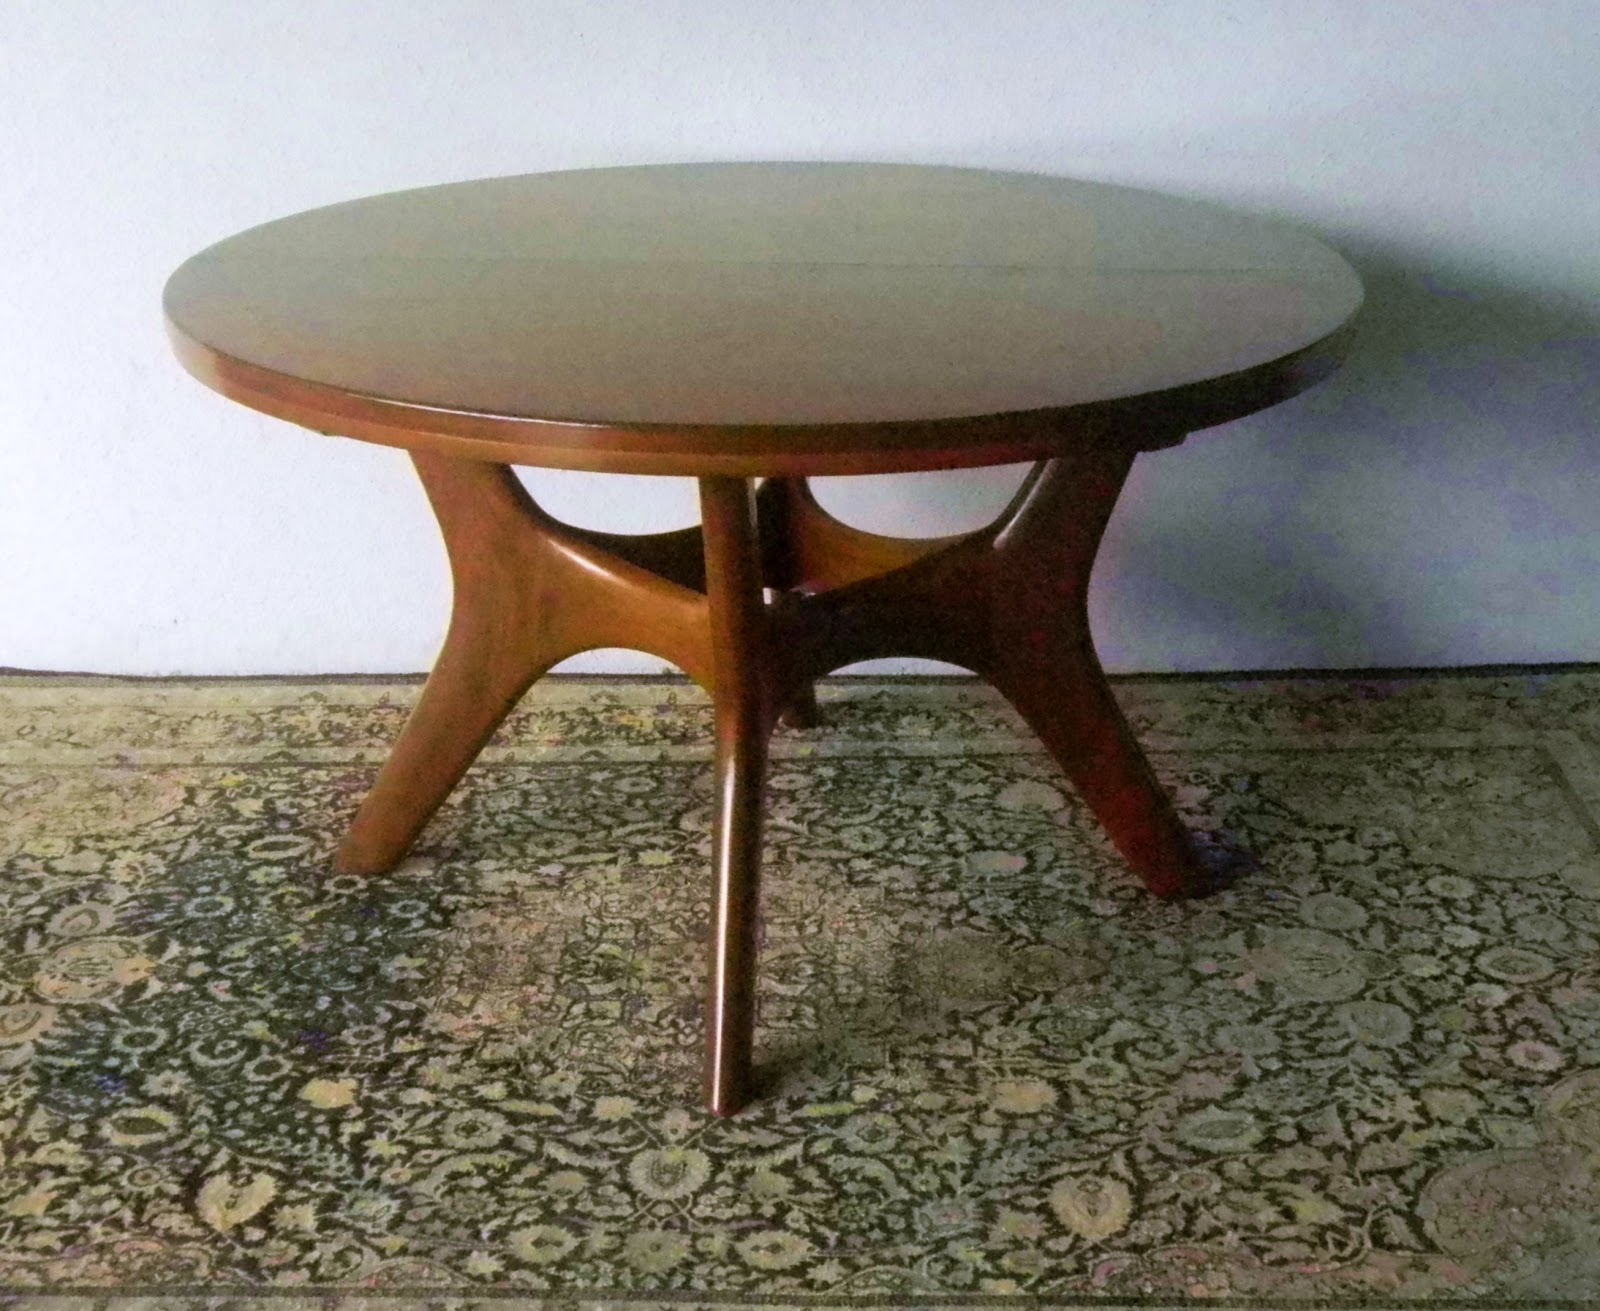 Lovely Round Dining Table Kuala Lumpur Light of Dining Room